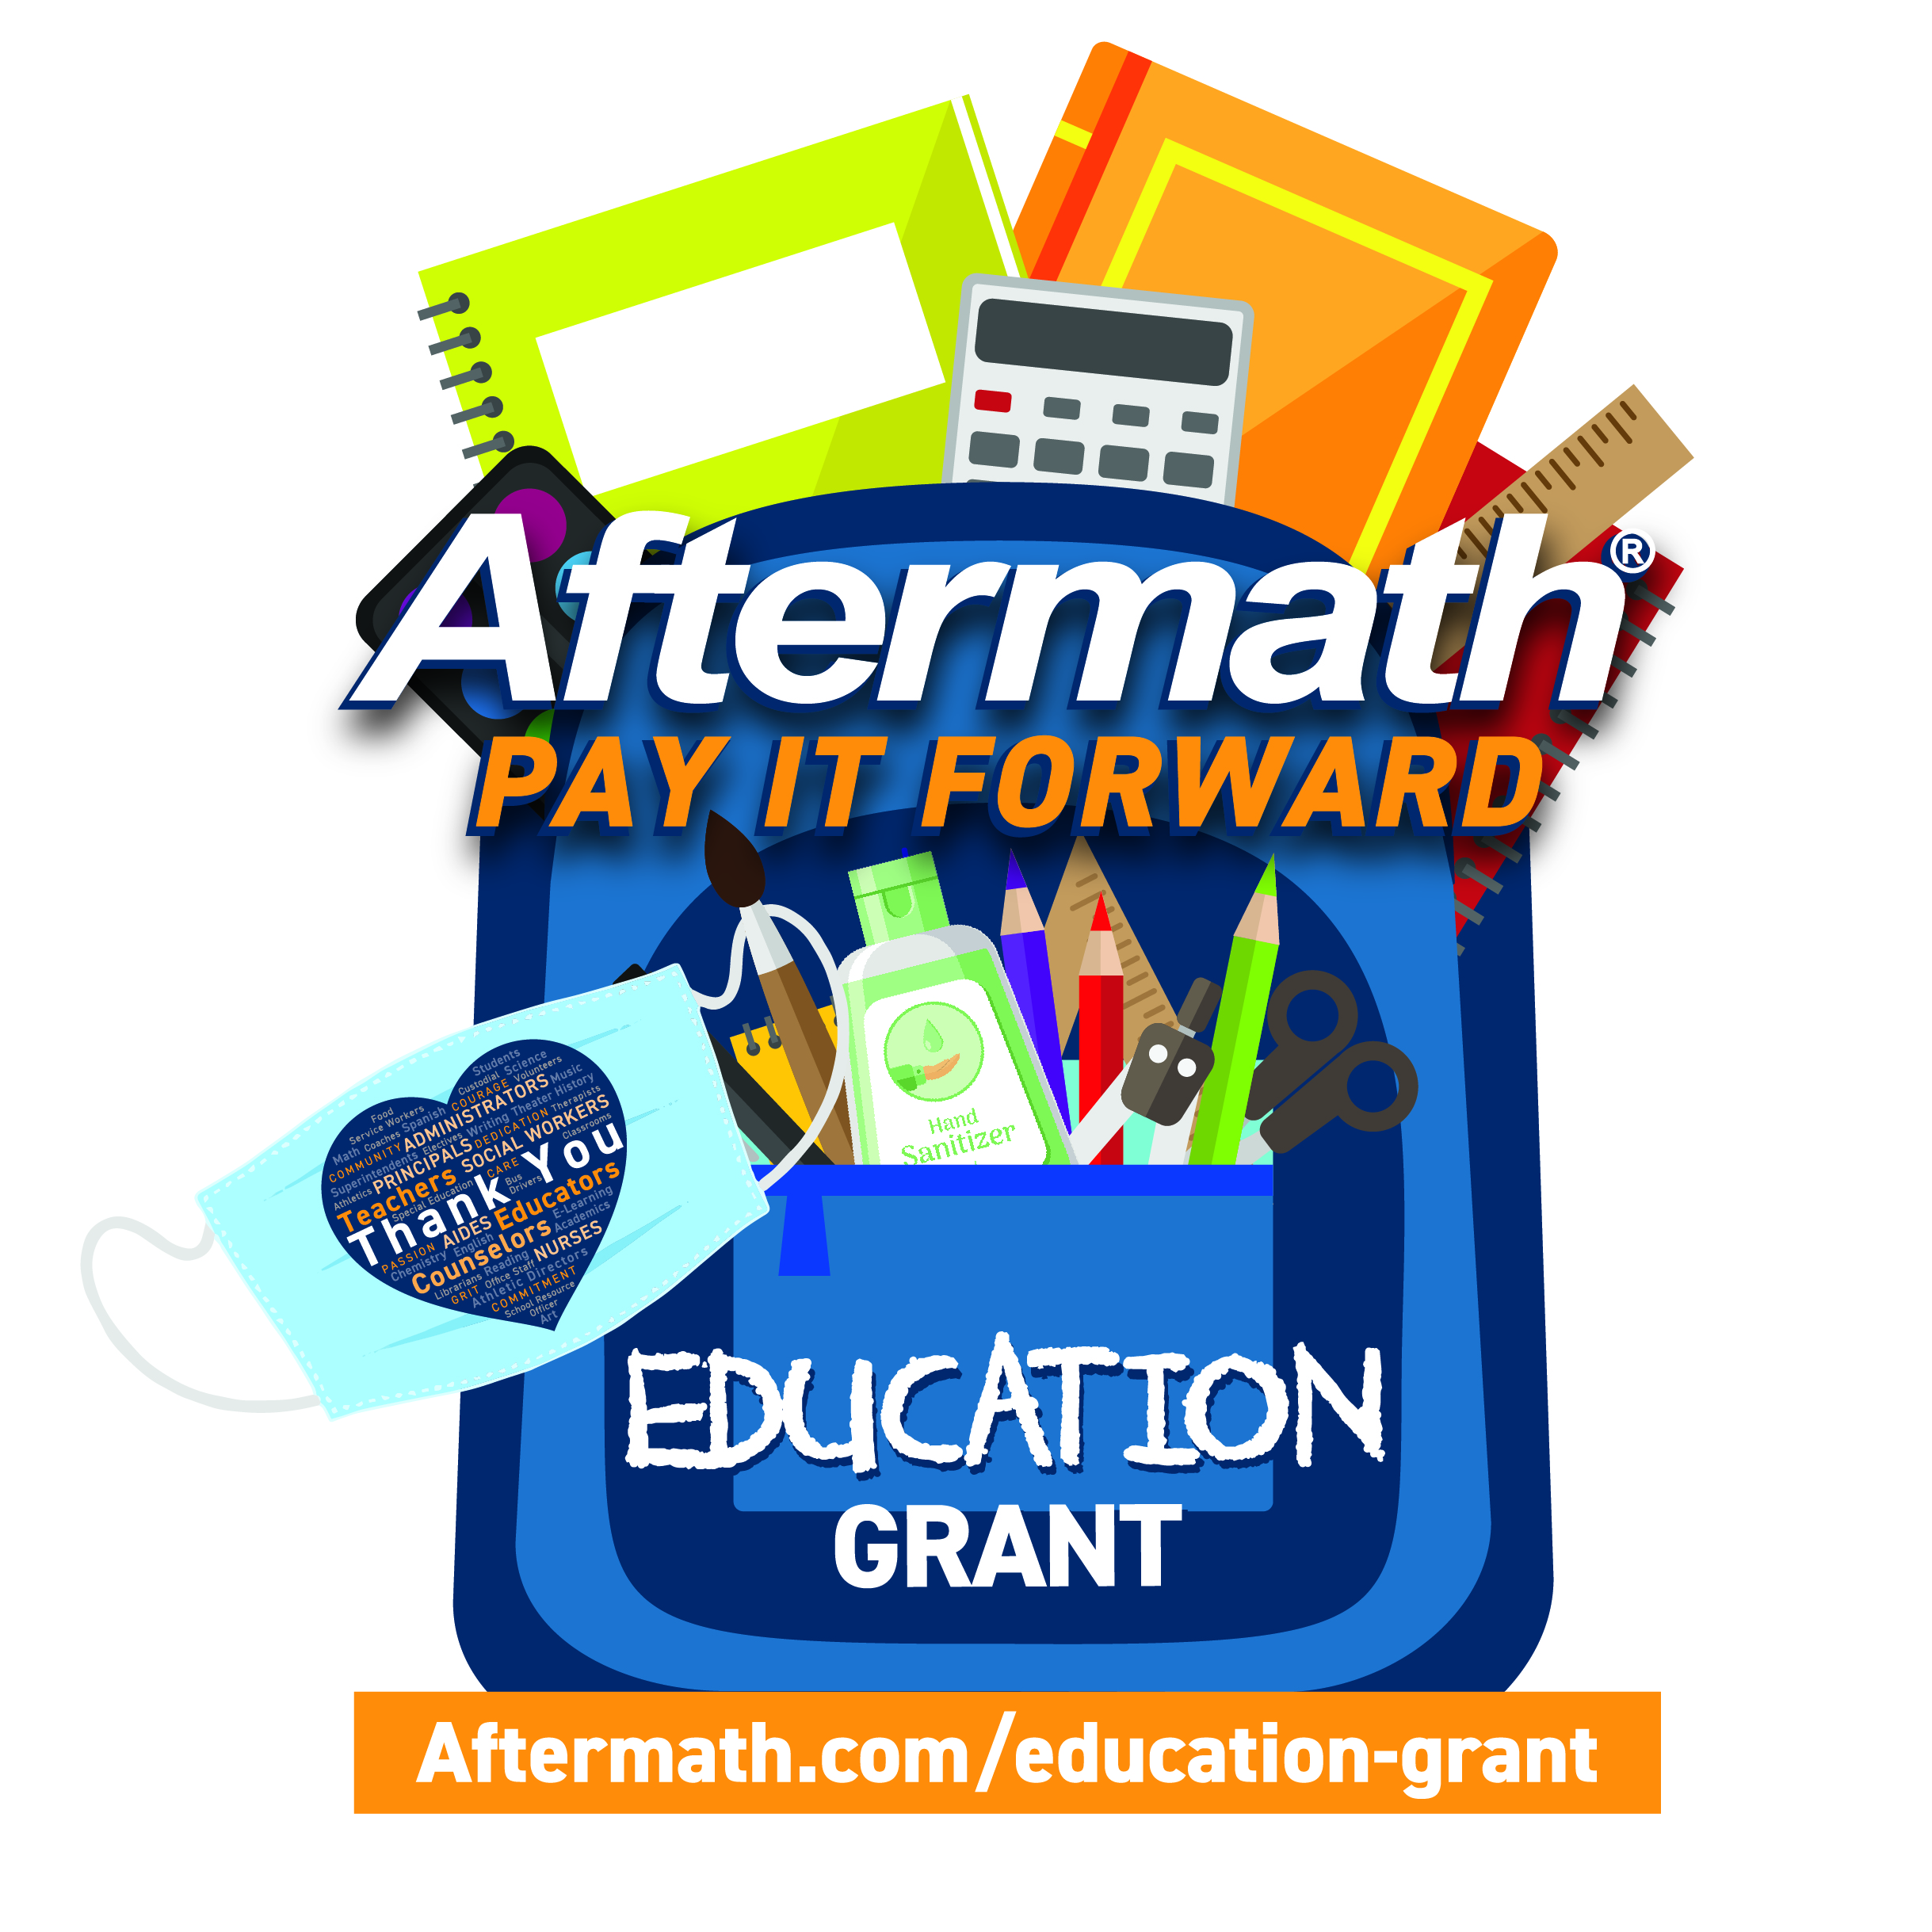 Aftermath Services Launches Pay It Forward Education Grant, Gives Back to Teachers During Pandemic